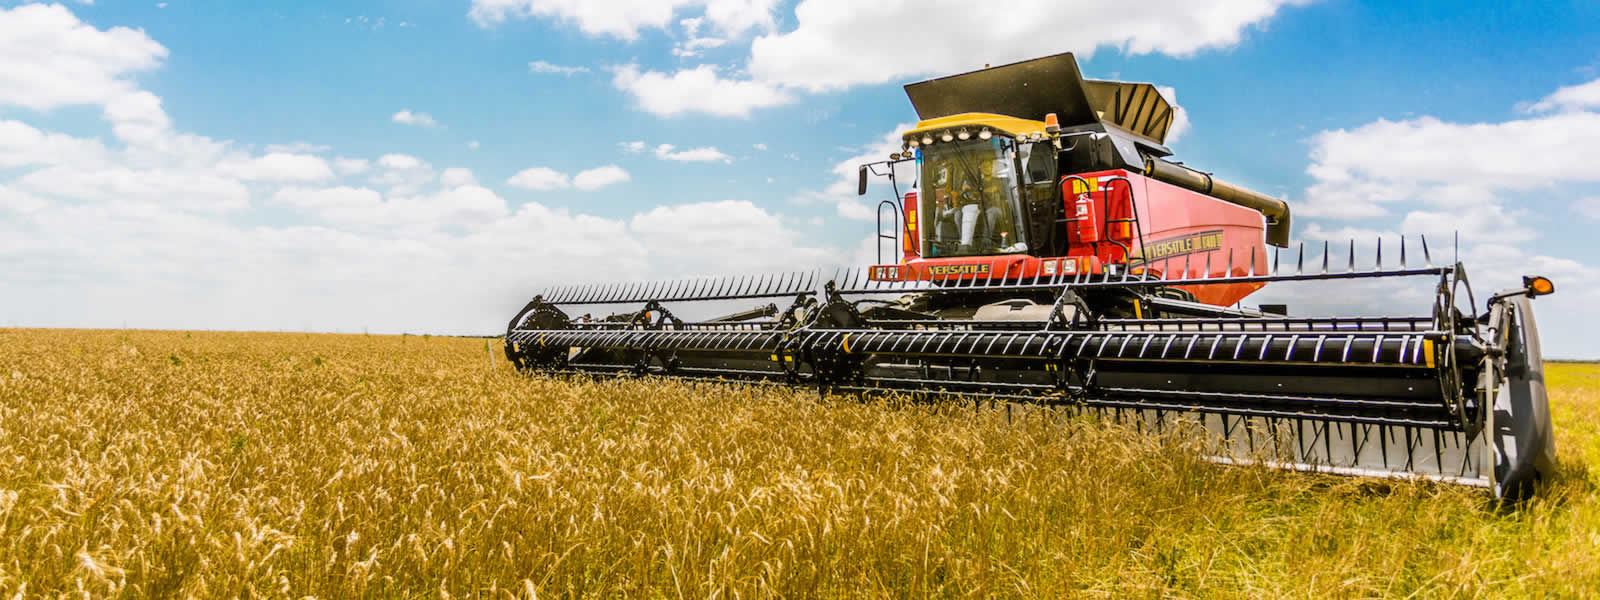 Key Industry: Agri-business